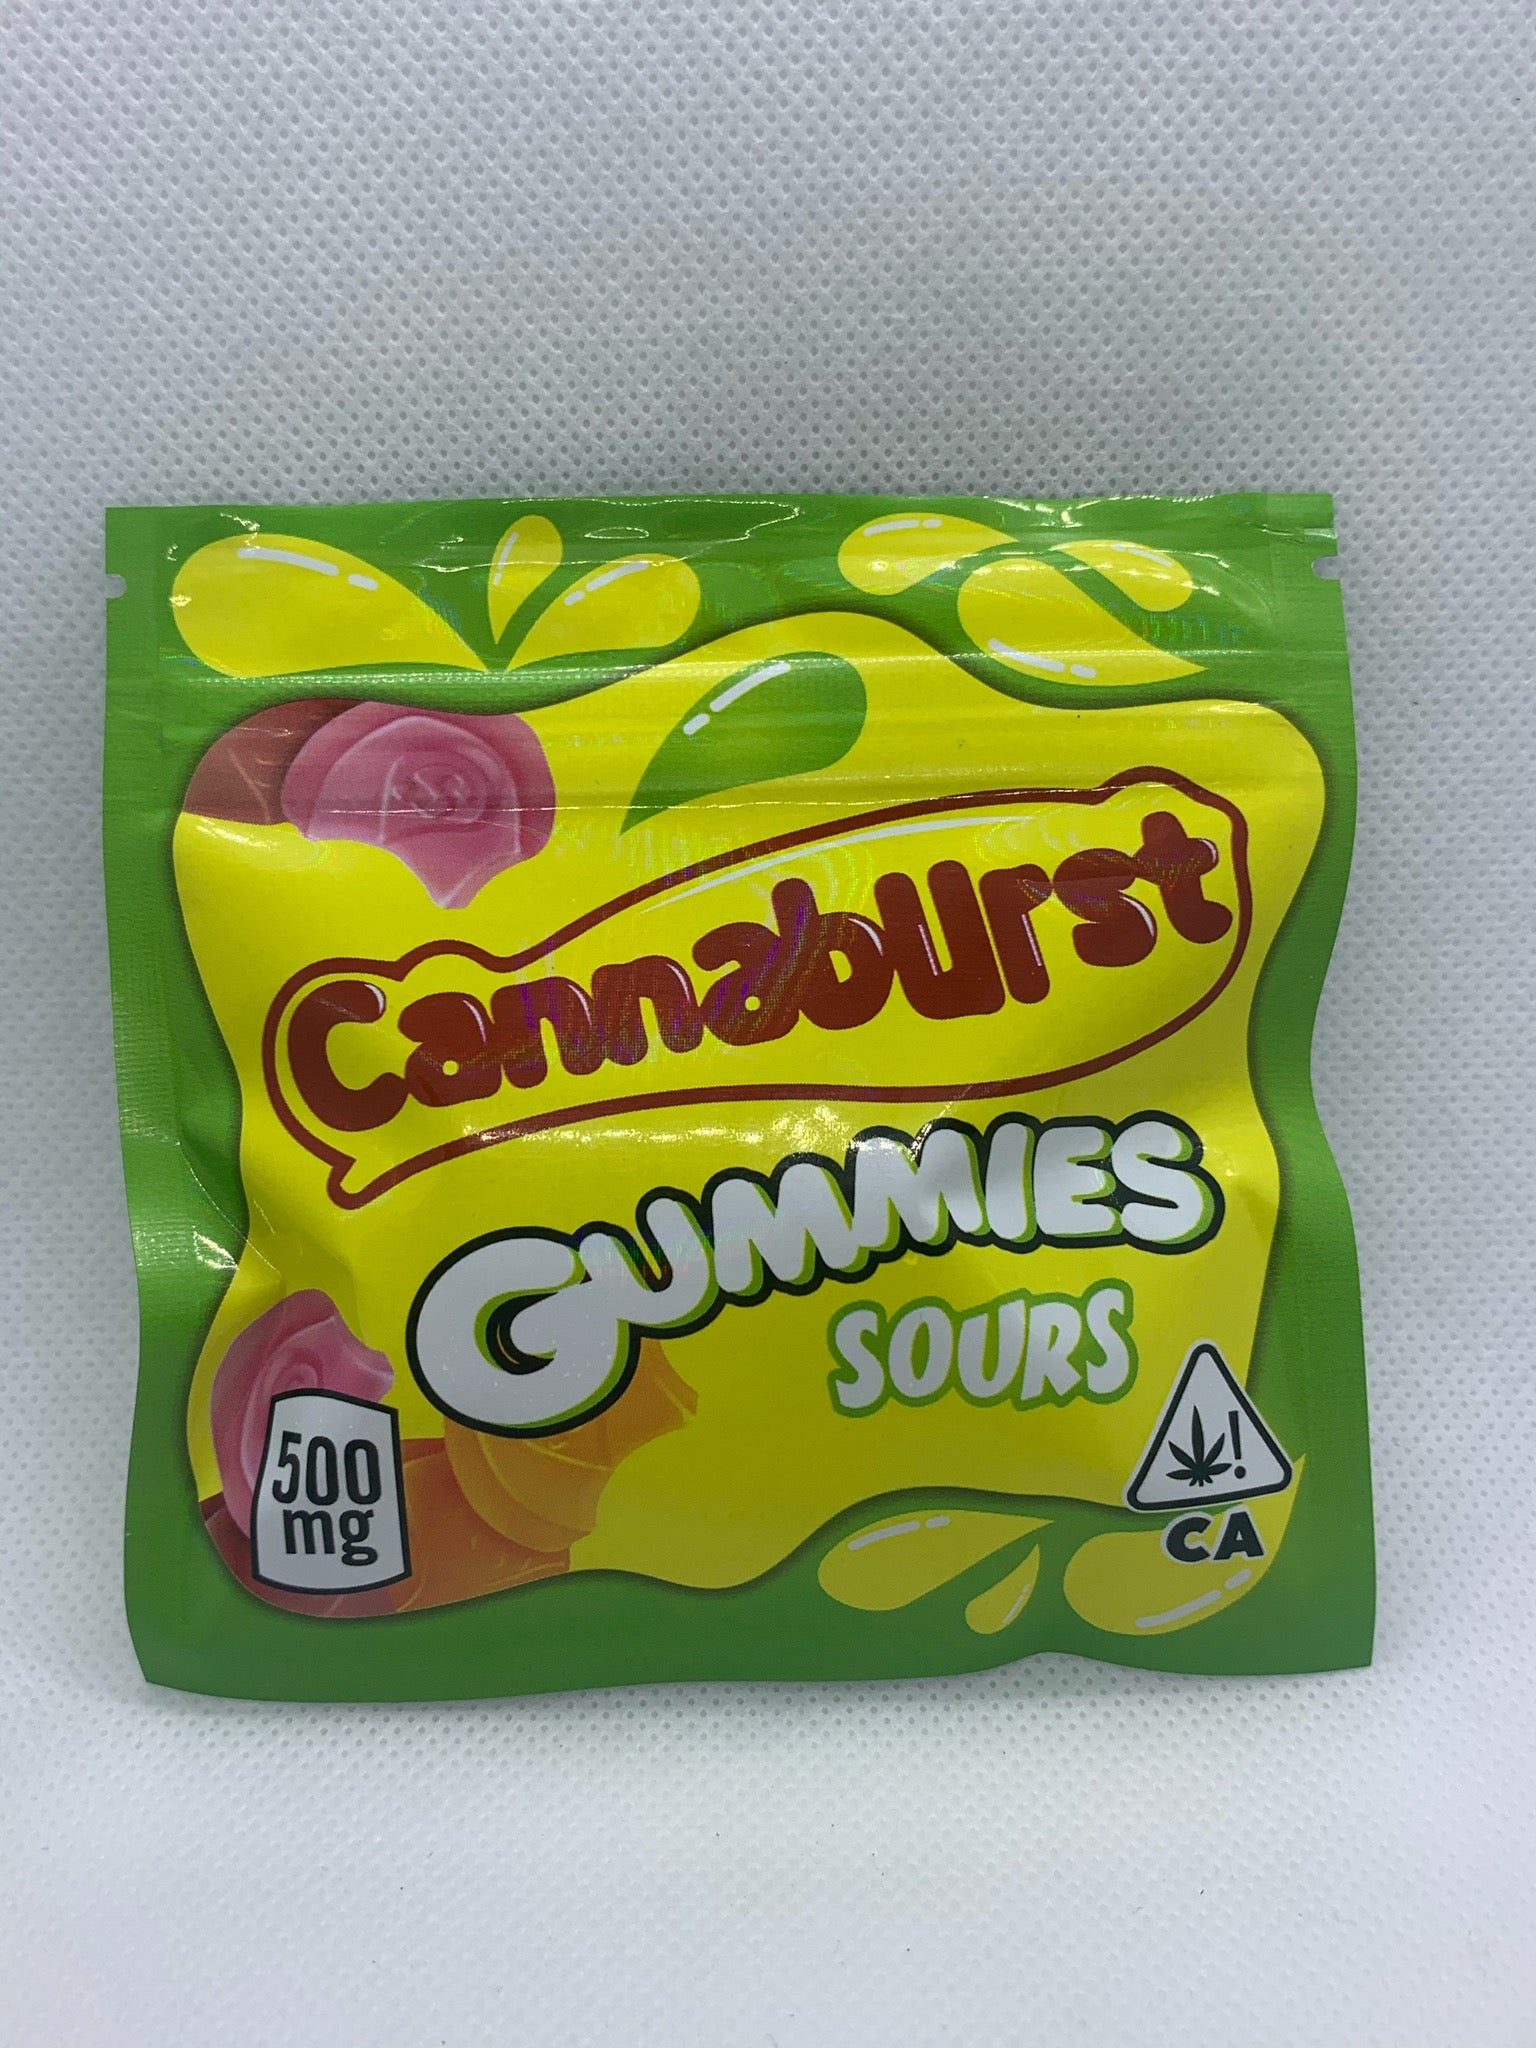 500mg Cannaburst